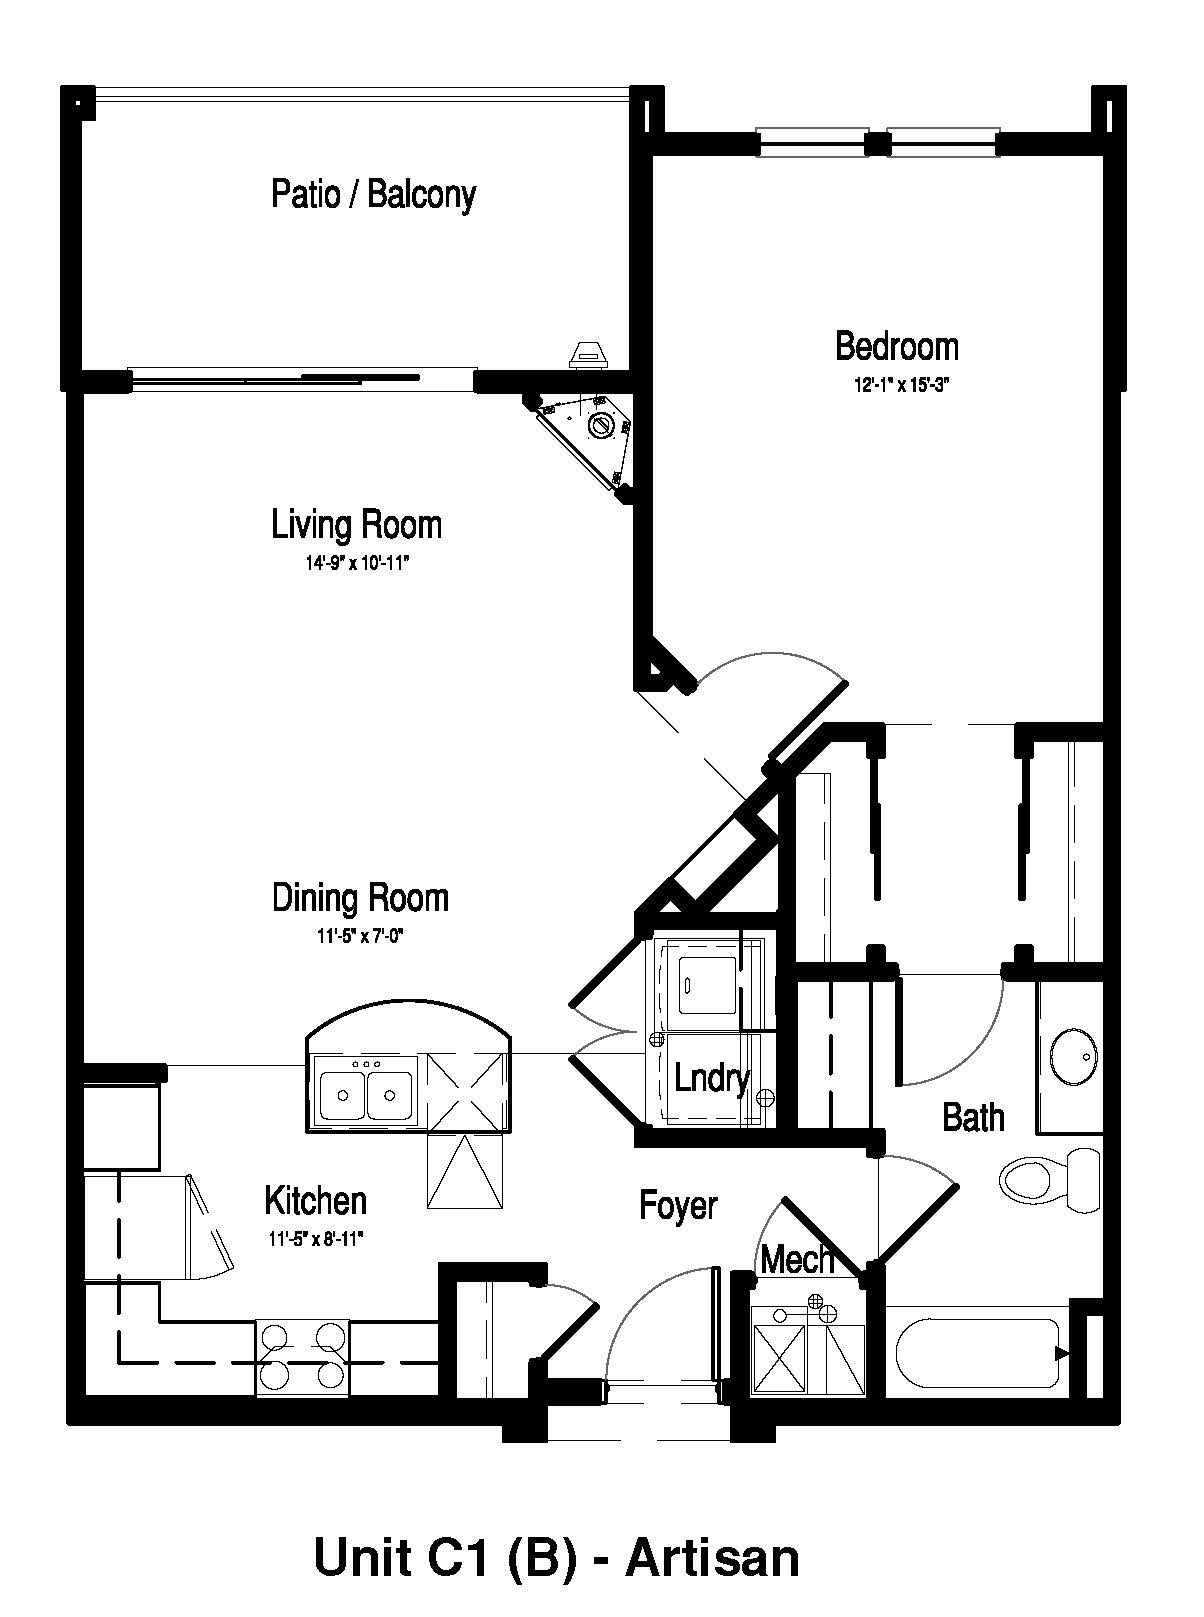 One Bedroom, One Bath - 866 Sq. Ft. - The Artisan at Georgetown Square